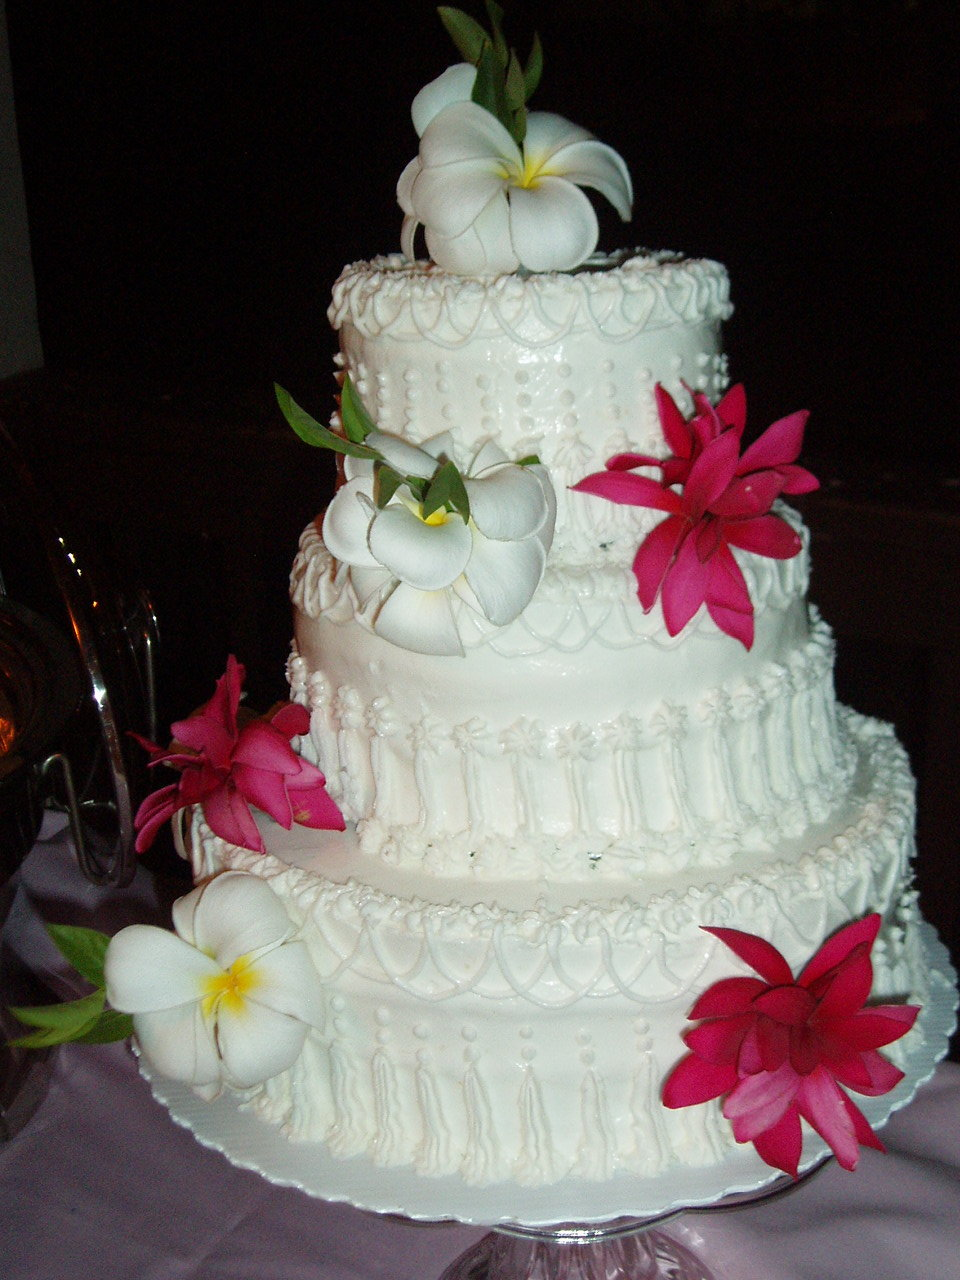 Cake royal decoration.JPG